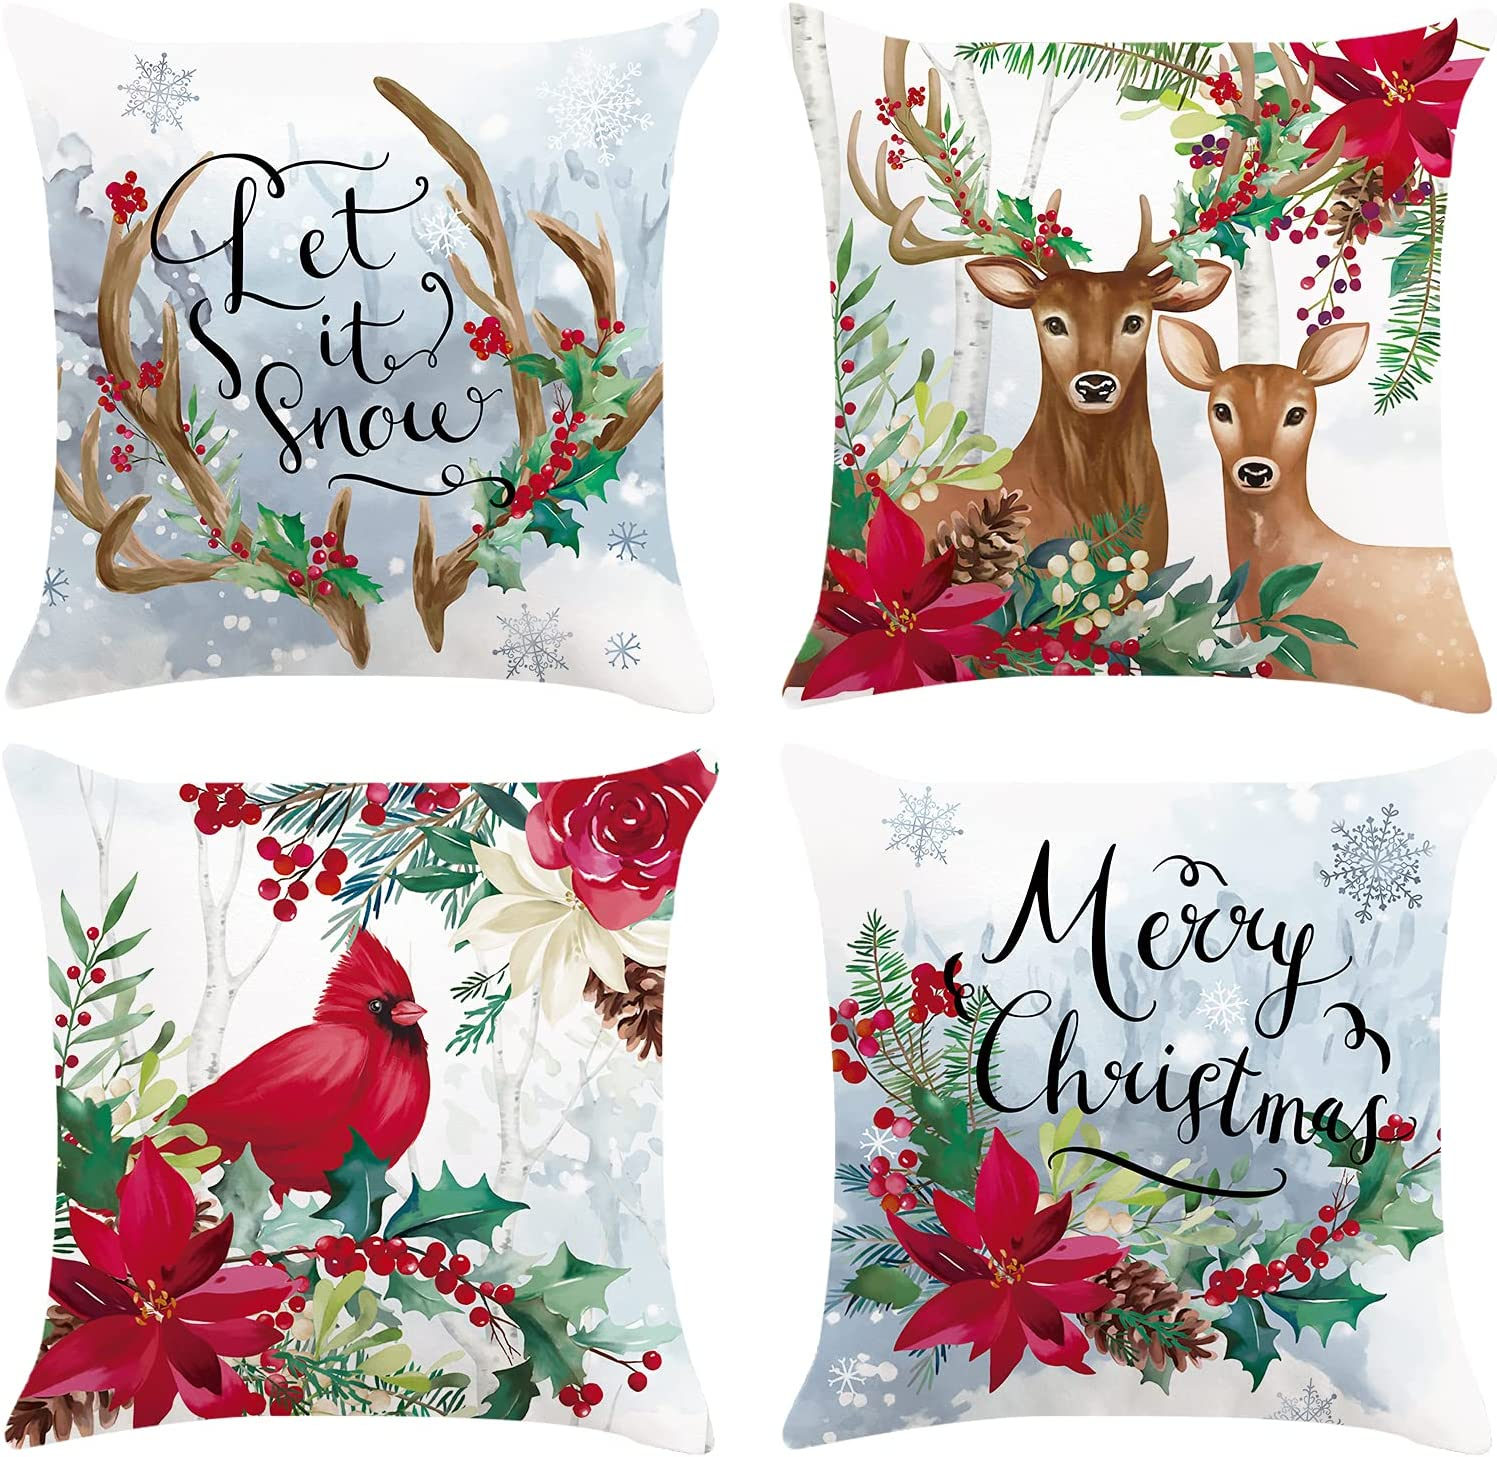 Bonhause Christmas Deer Throw Pillow Covers 18 x 18 Inch Set of 4 Cardinal Poinsettia Floral Decorative Pillow Case Soft Velvet Winter Holiday Cushion Cover for Sofa Couch Bed Christmas Home Decor